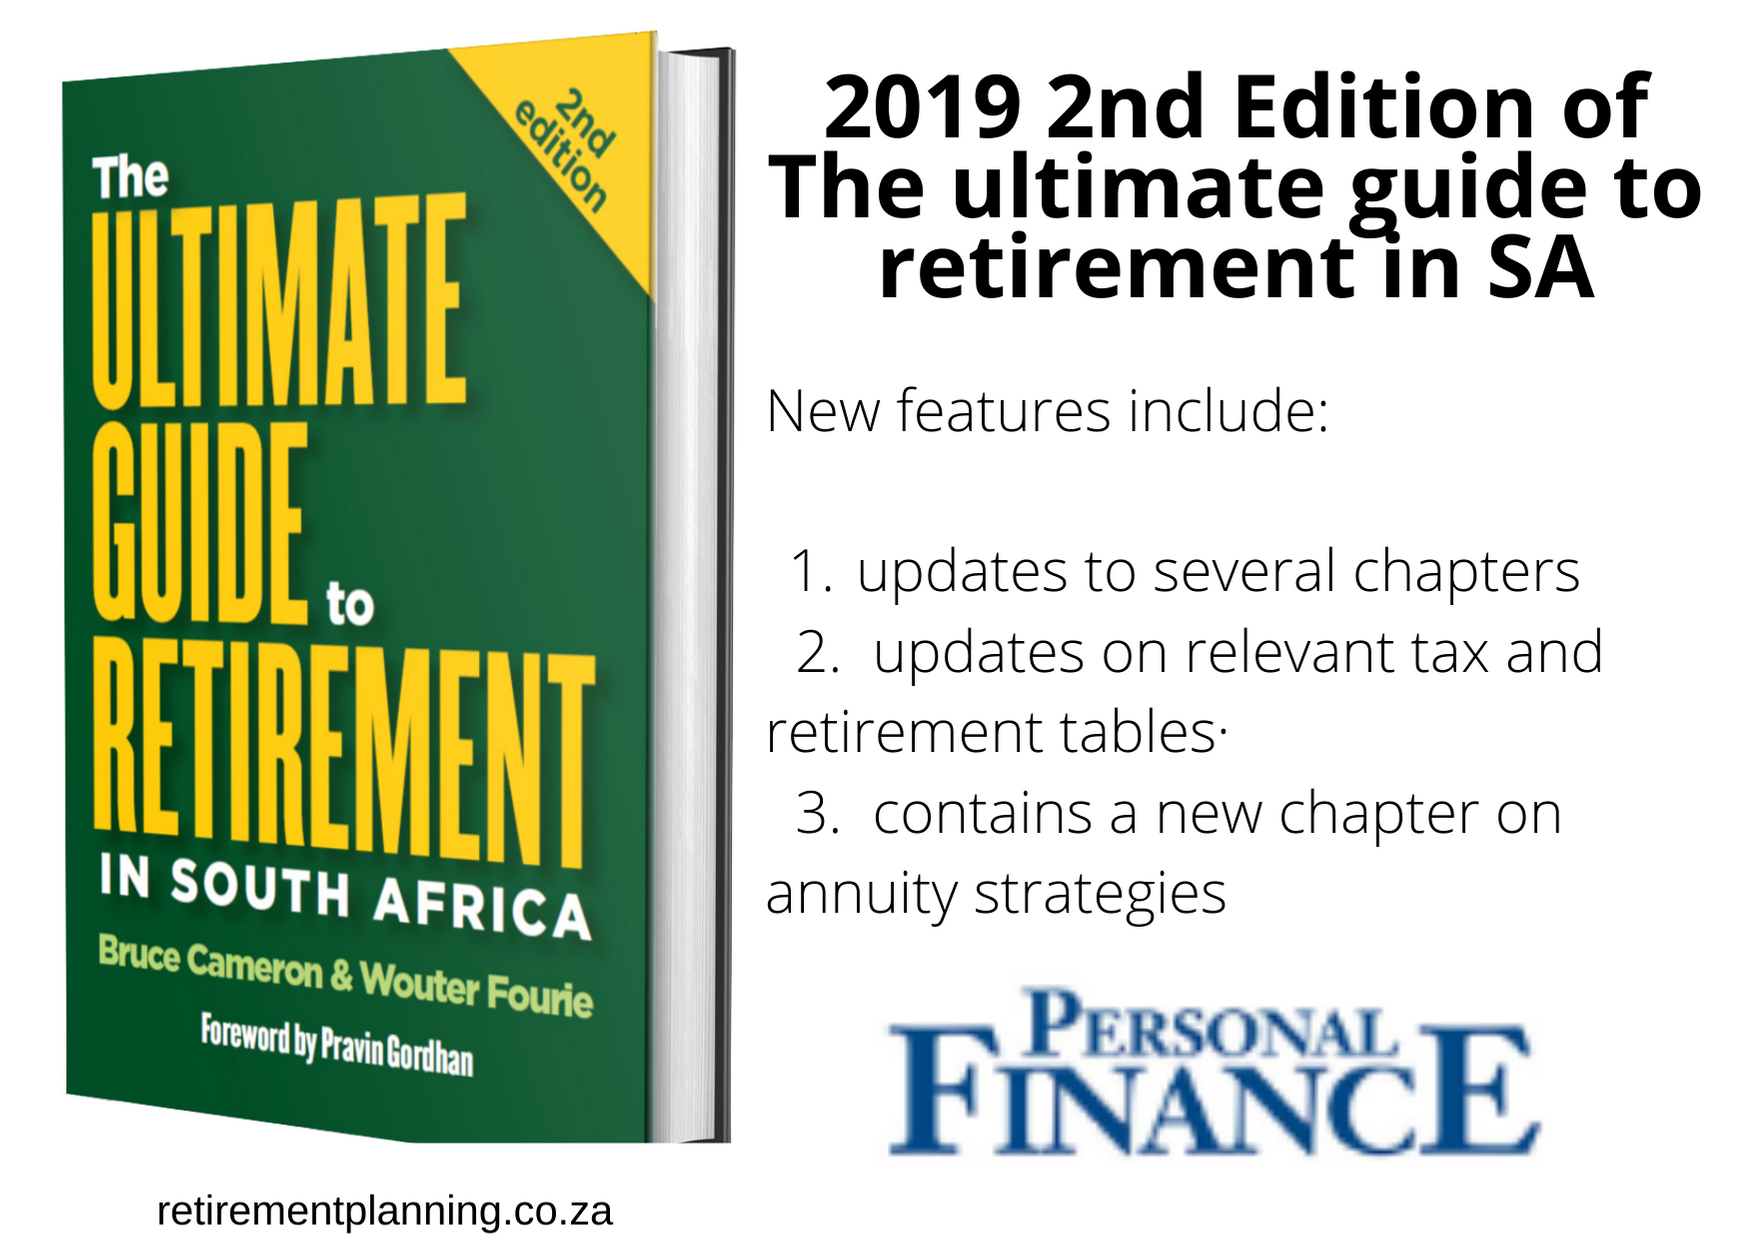 2019 2nd edition of Ultimate Guide to Retirement in SA Personal Finance